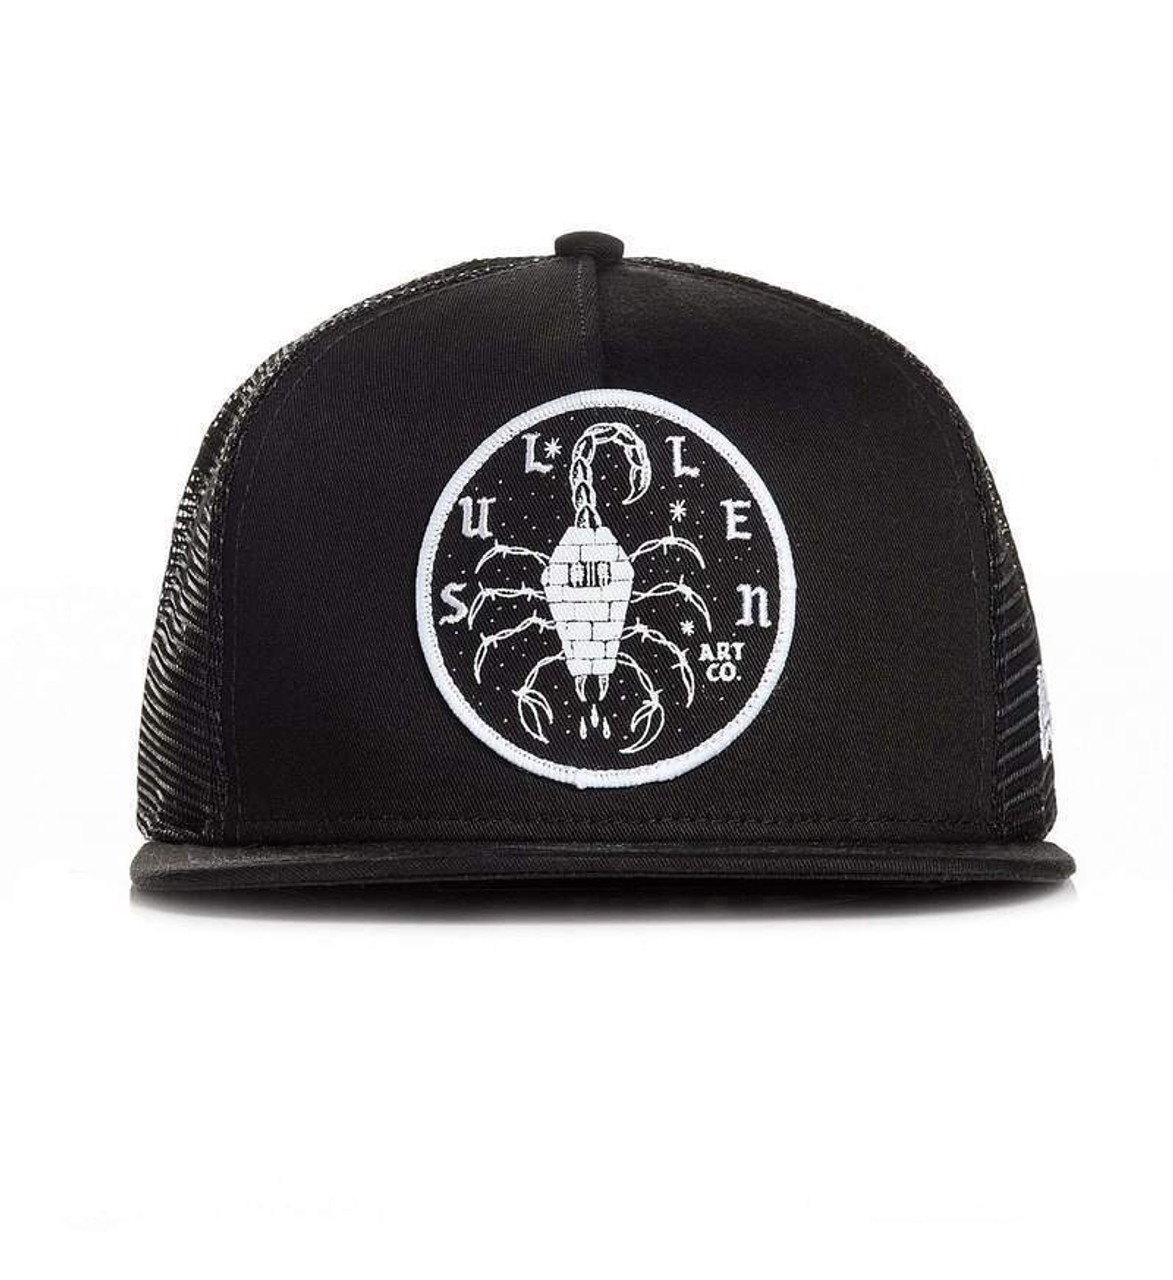 17ec04e1a1c52 Sullen Clothing Killing Time Scorpion Art Snapback Trucker Mesh Cap Hat  SCA2204 - Fearless Apparel